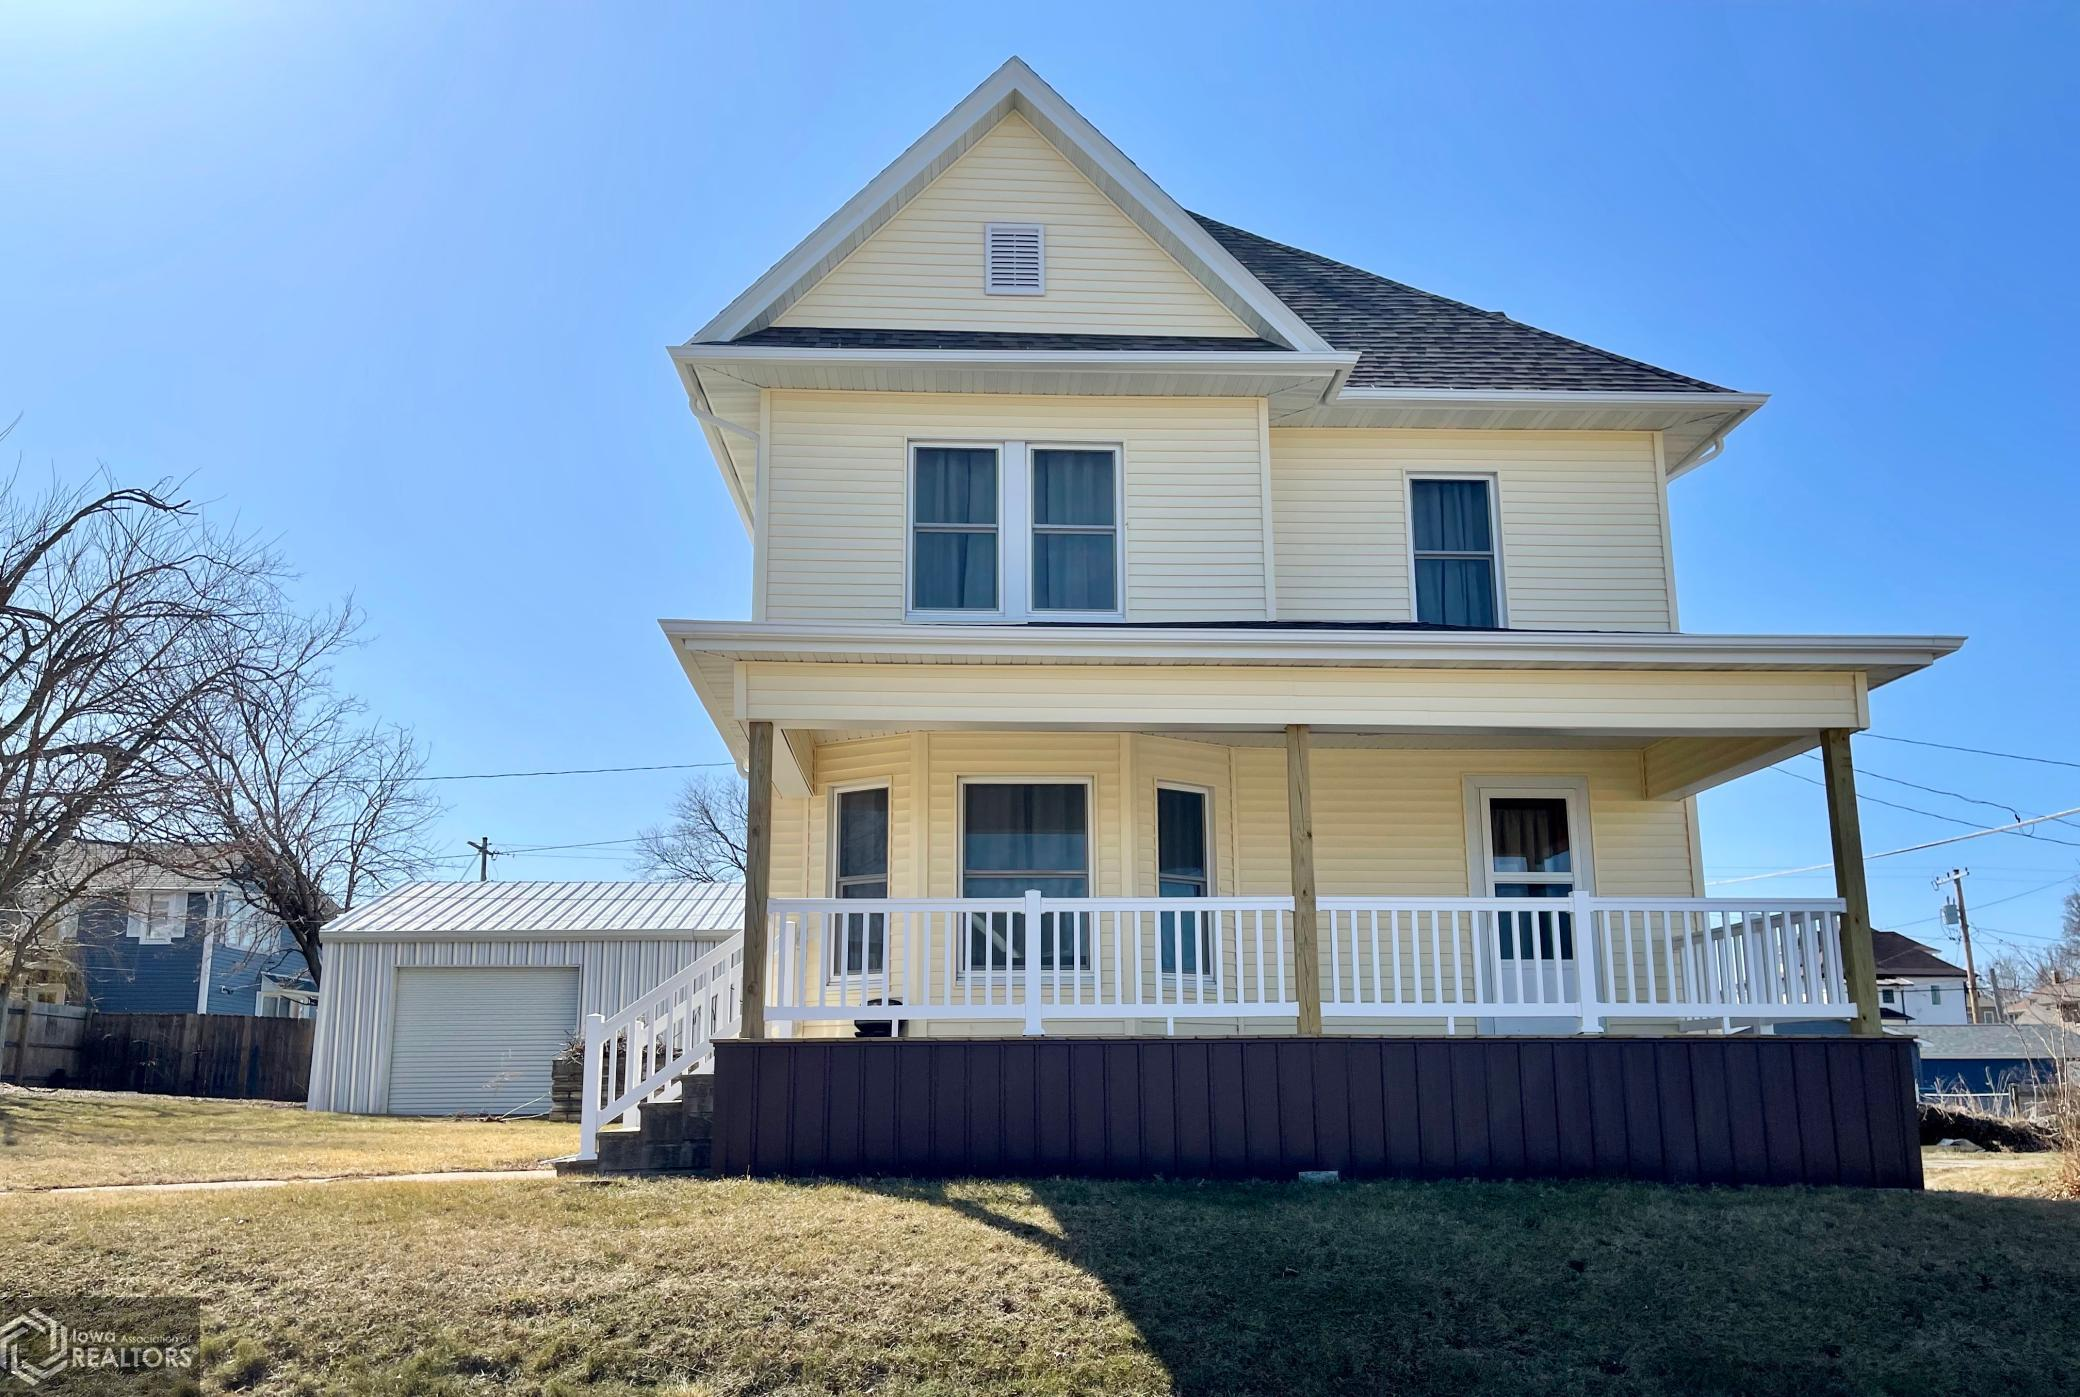 706 State, Marshalltown, Iowa 50158-6119, 4 Bedrooms Bedrooms, ,1 BathroomBathrooms,Single Family,For Sale,State,5728099